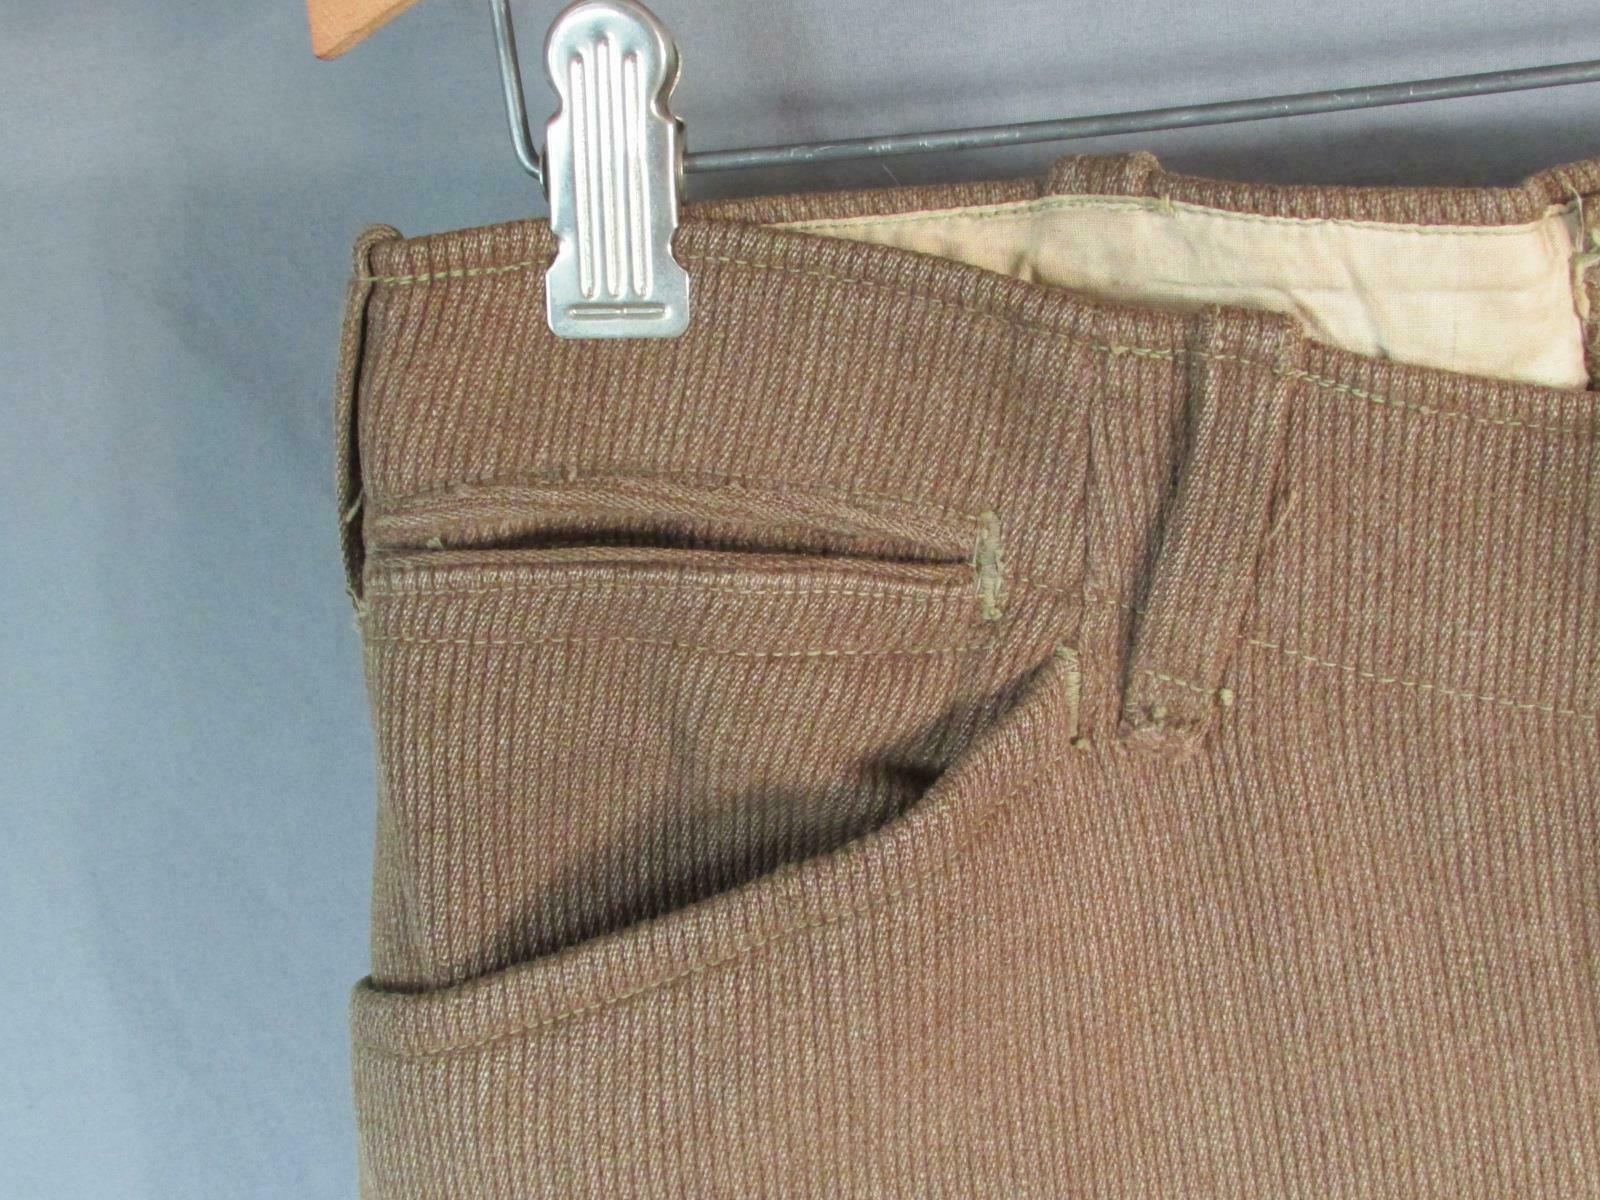 Vintage 1910s Wool Whipcord Riding Pants WWI Mili… - image 4